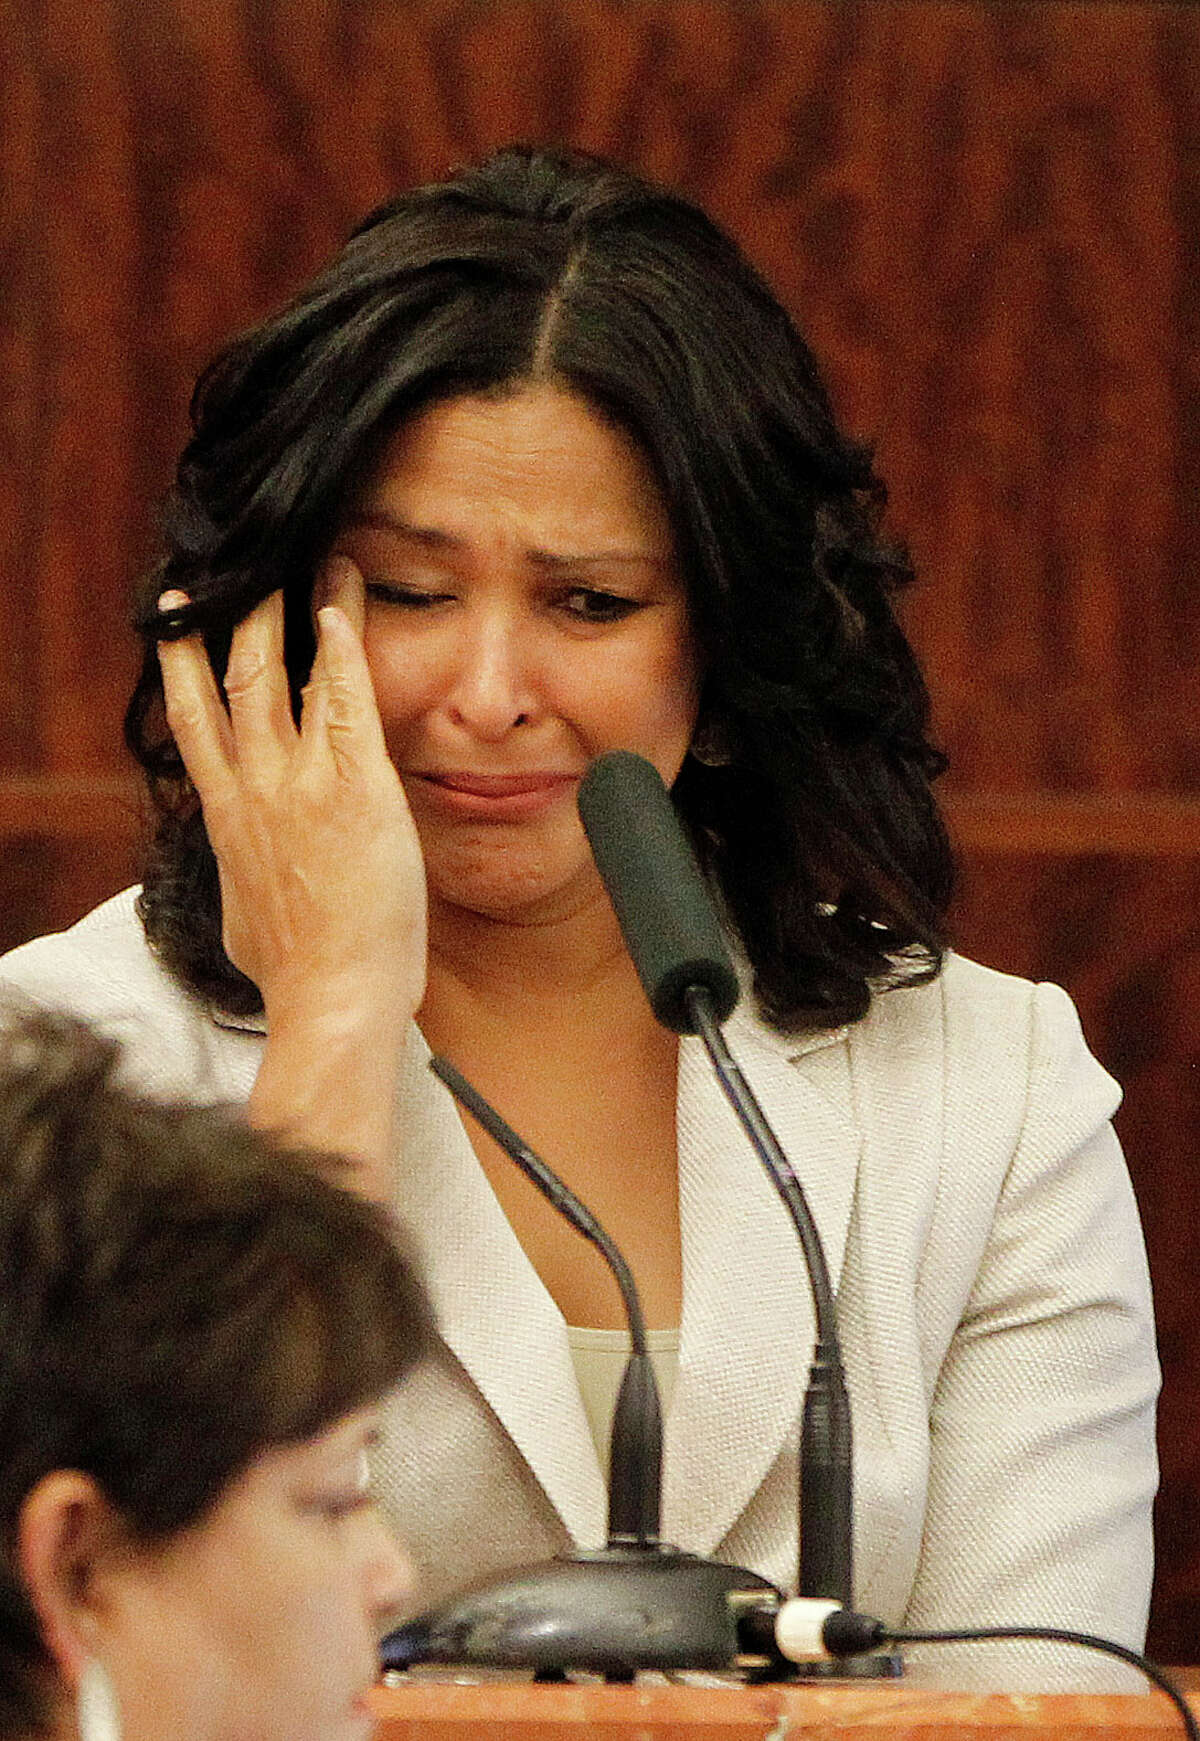 Evette Toney, the girlfriend of Dr. George Blumenschein, wipes tears as she talks about her miscarriage as she testifies during the trial of Dr. Ana Gonzalez-Angulo, the cancer doctor accused of poisoning her lover.